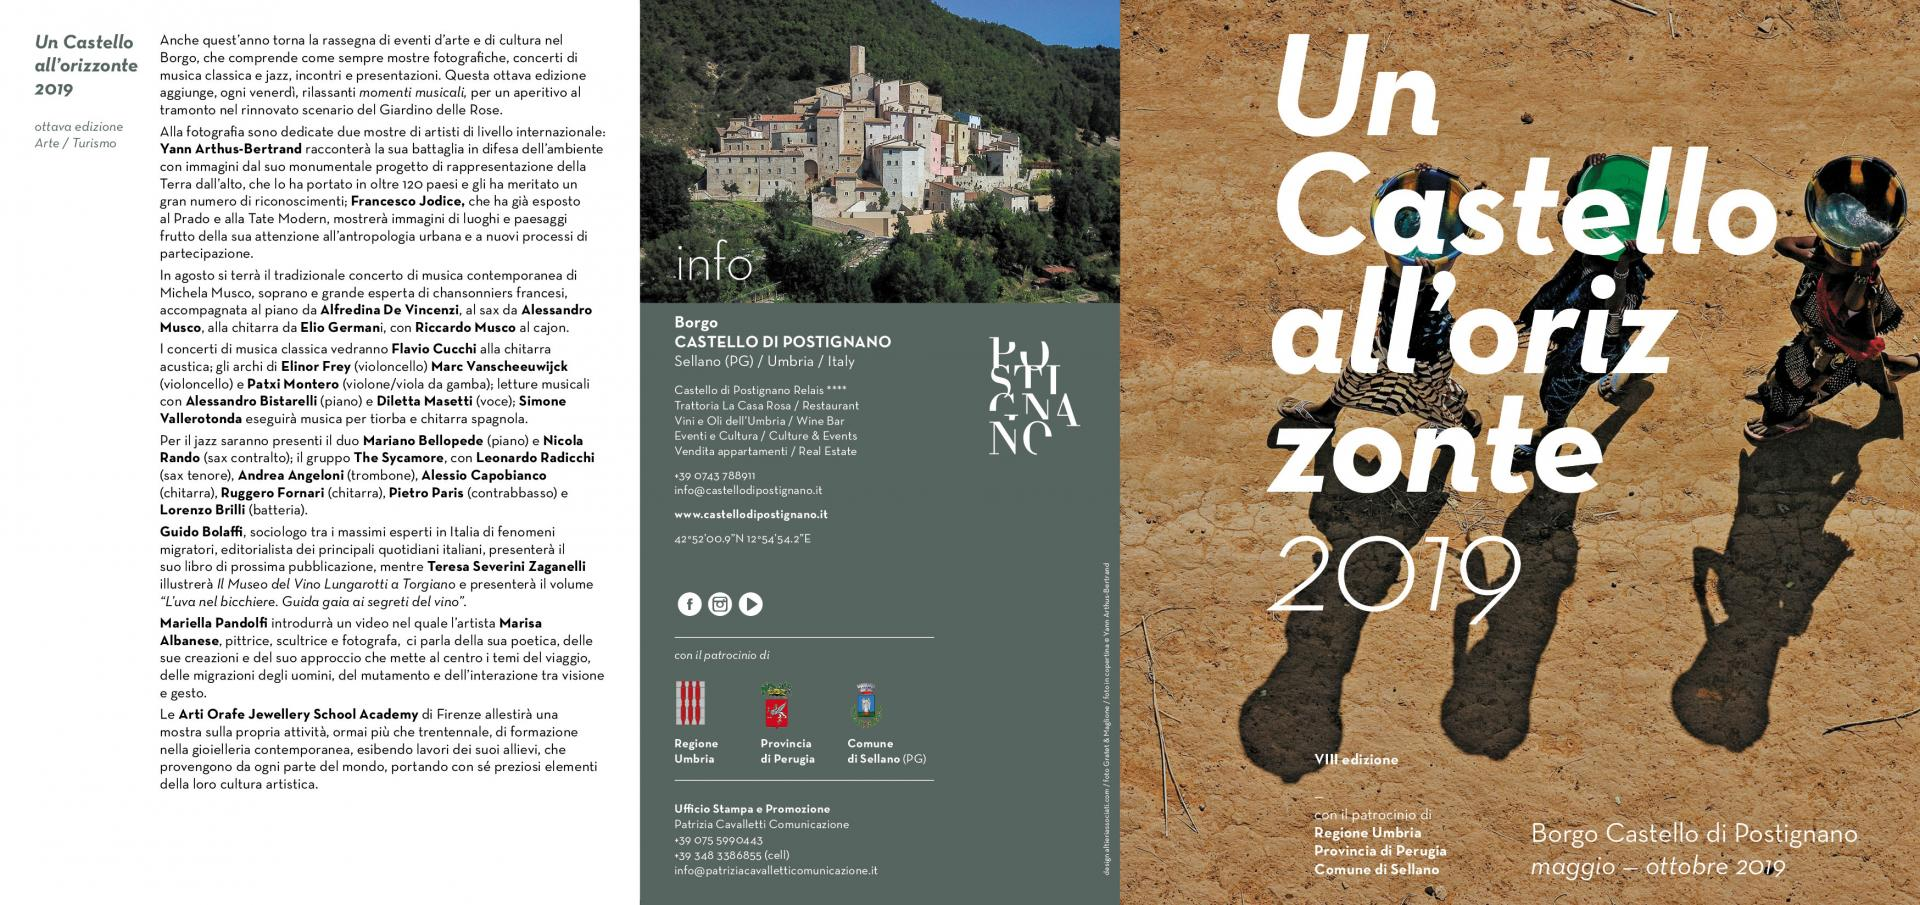 Un Castello all'Orizzonte 2019